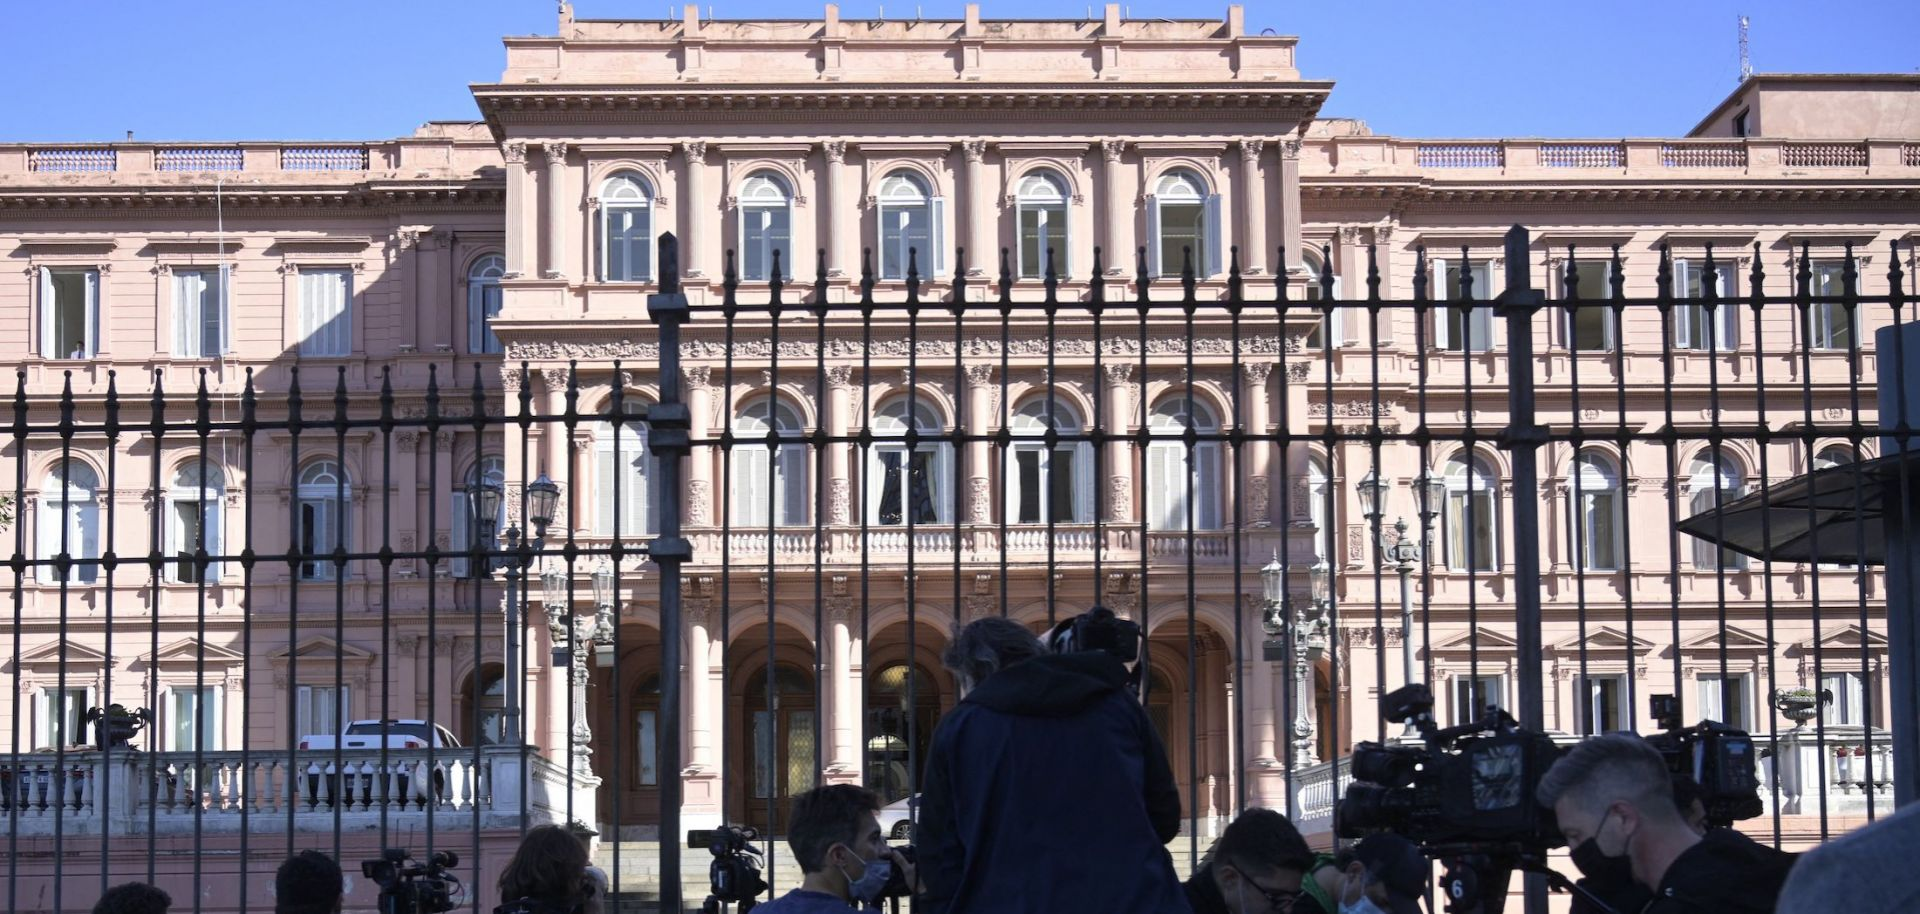 The Casa Rosada government palace on Sept. 16, 2021, in Buenos Aires, Argentina.